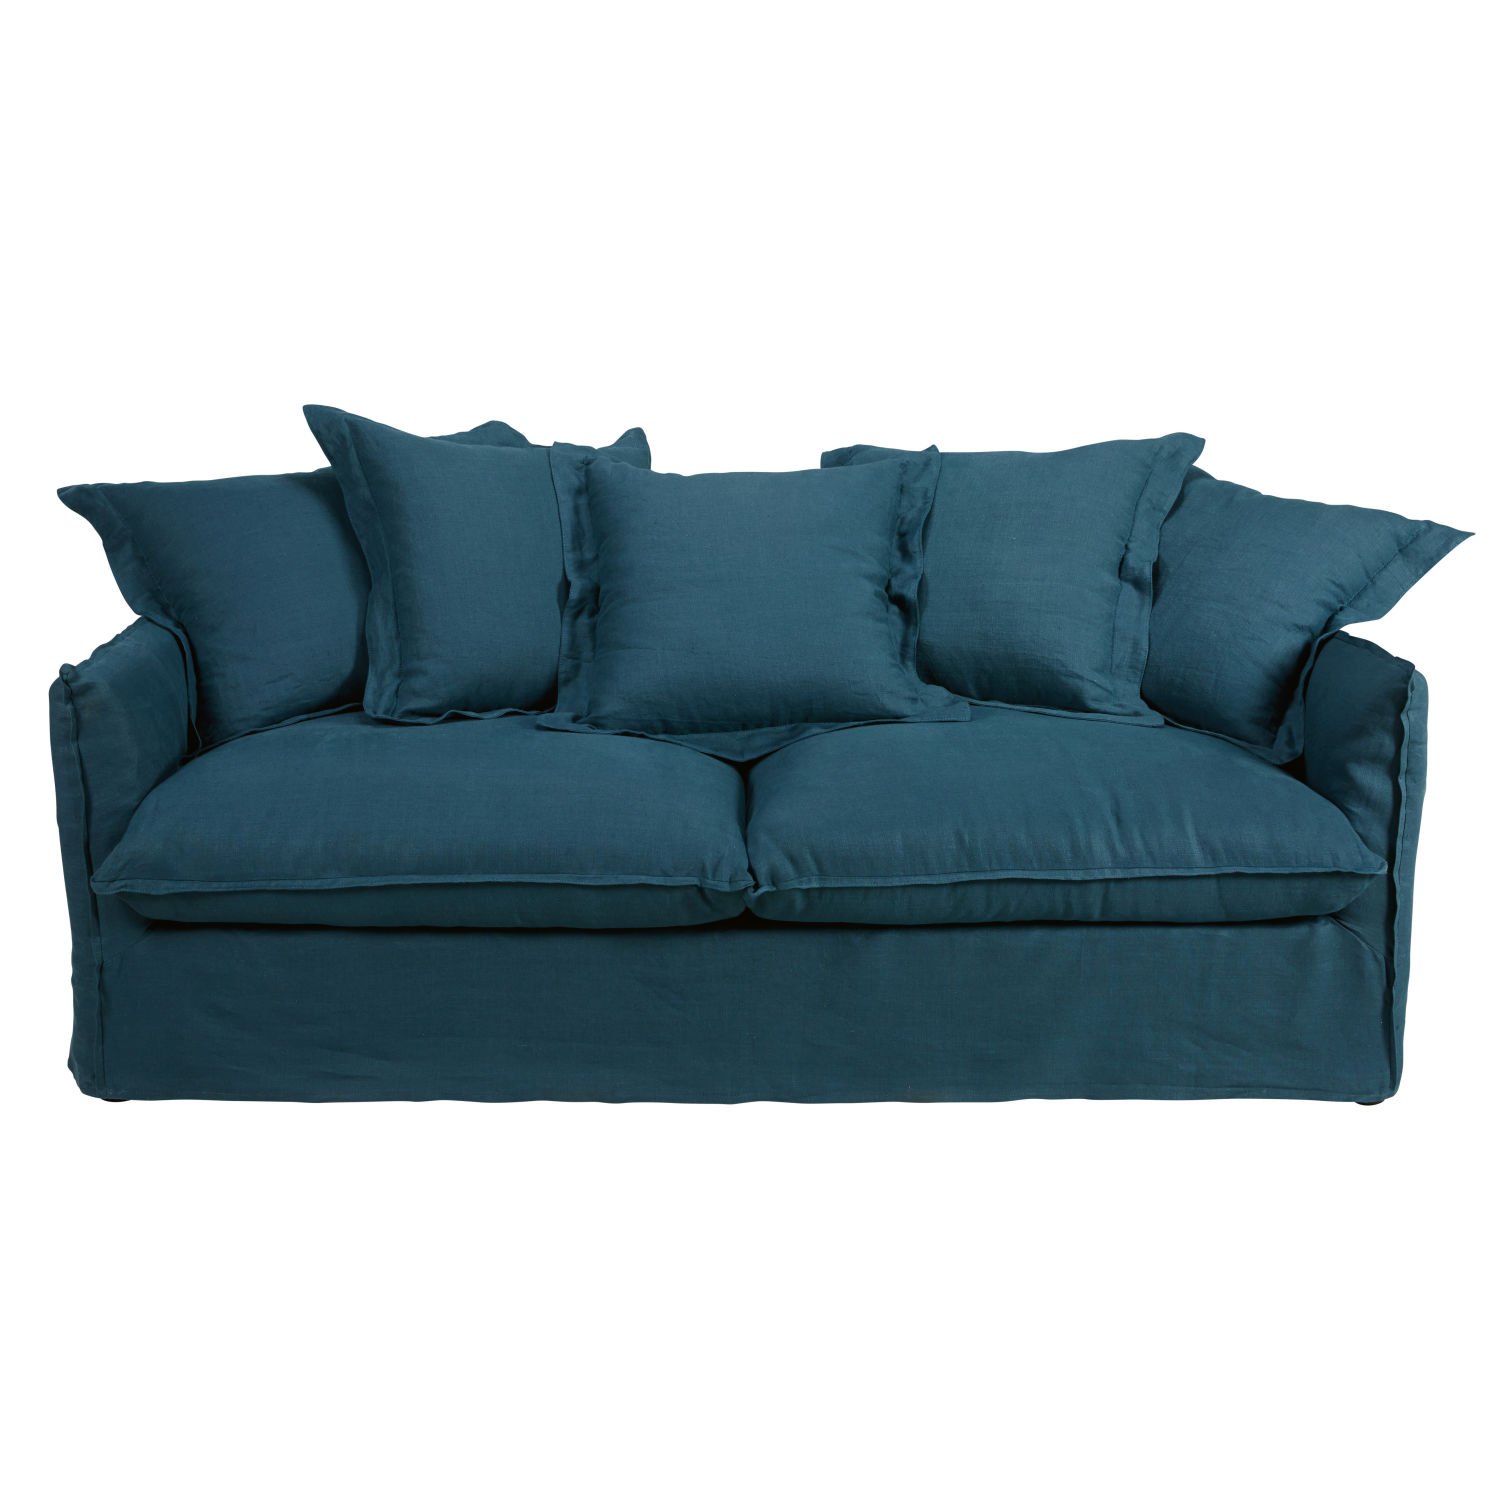 Petrol Blue 3 4 Seater Washed Linen Sofa Bed Barcelone Maisons Du